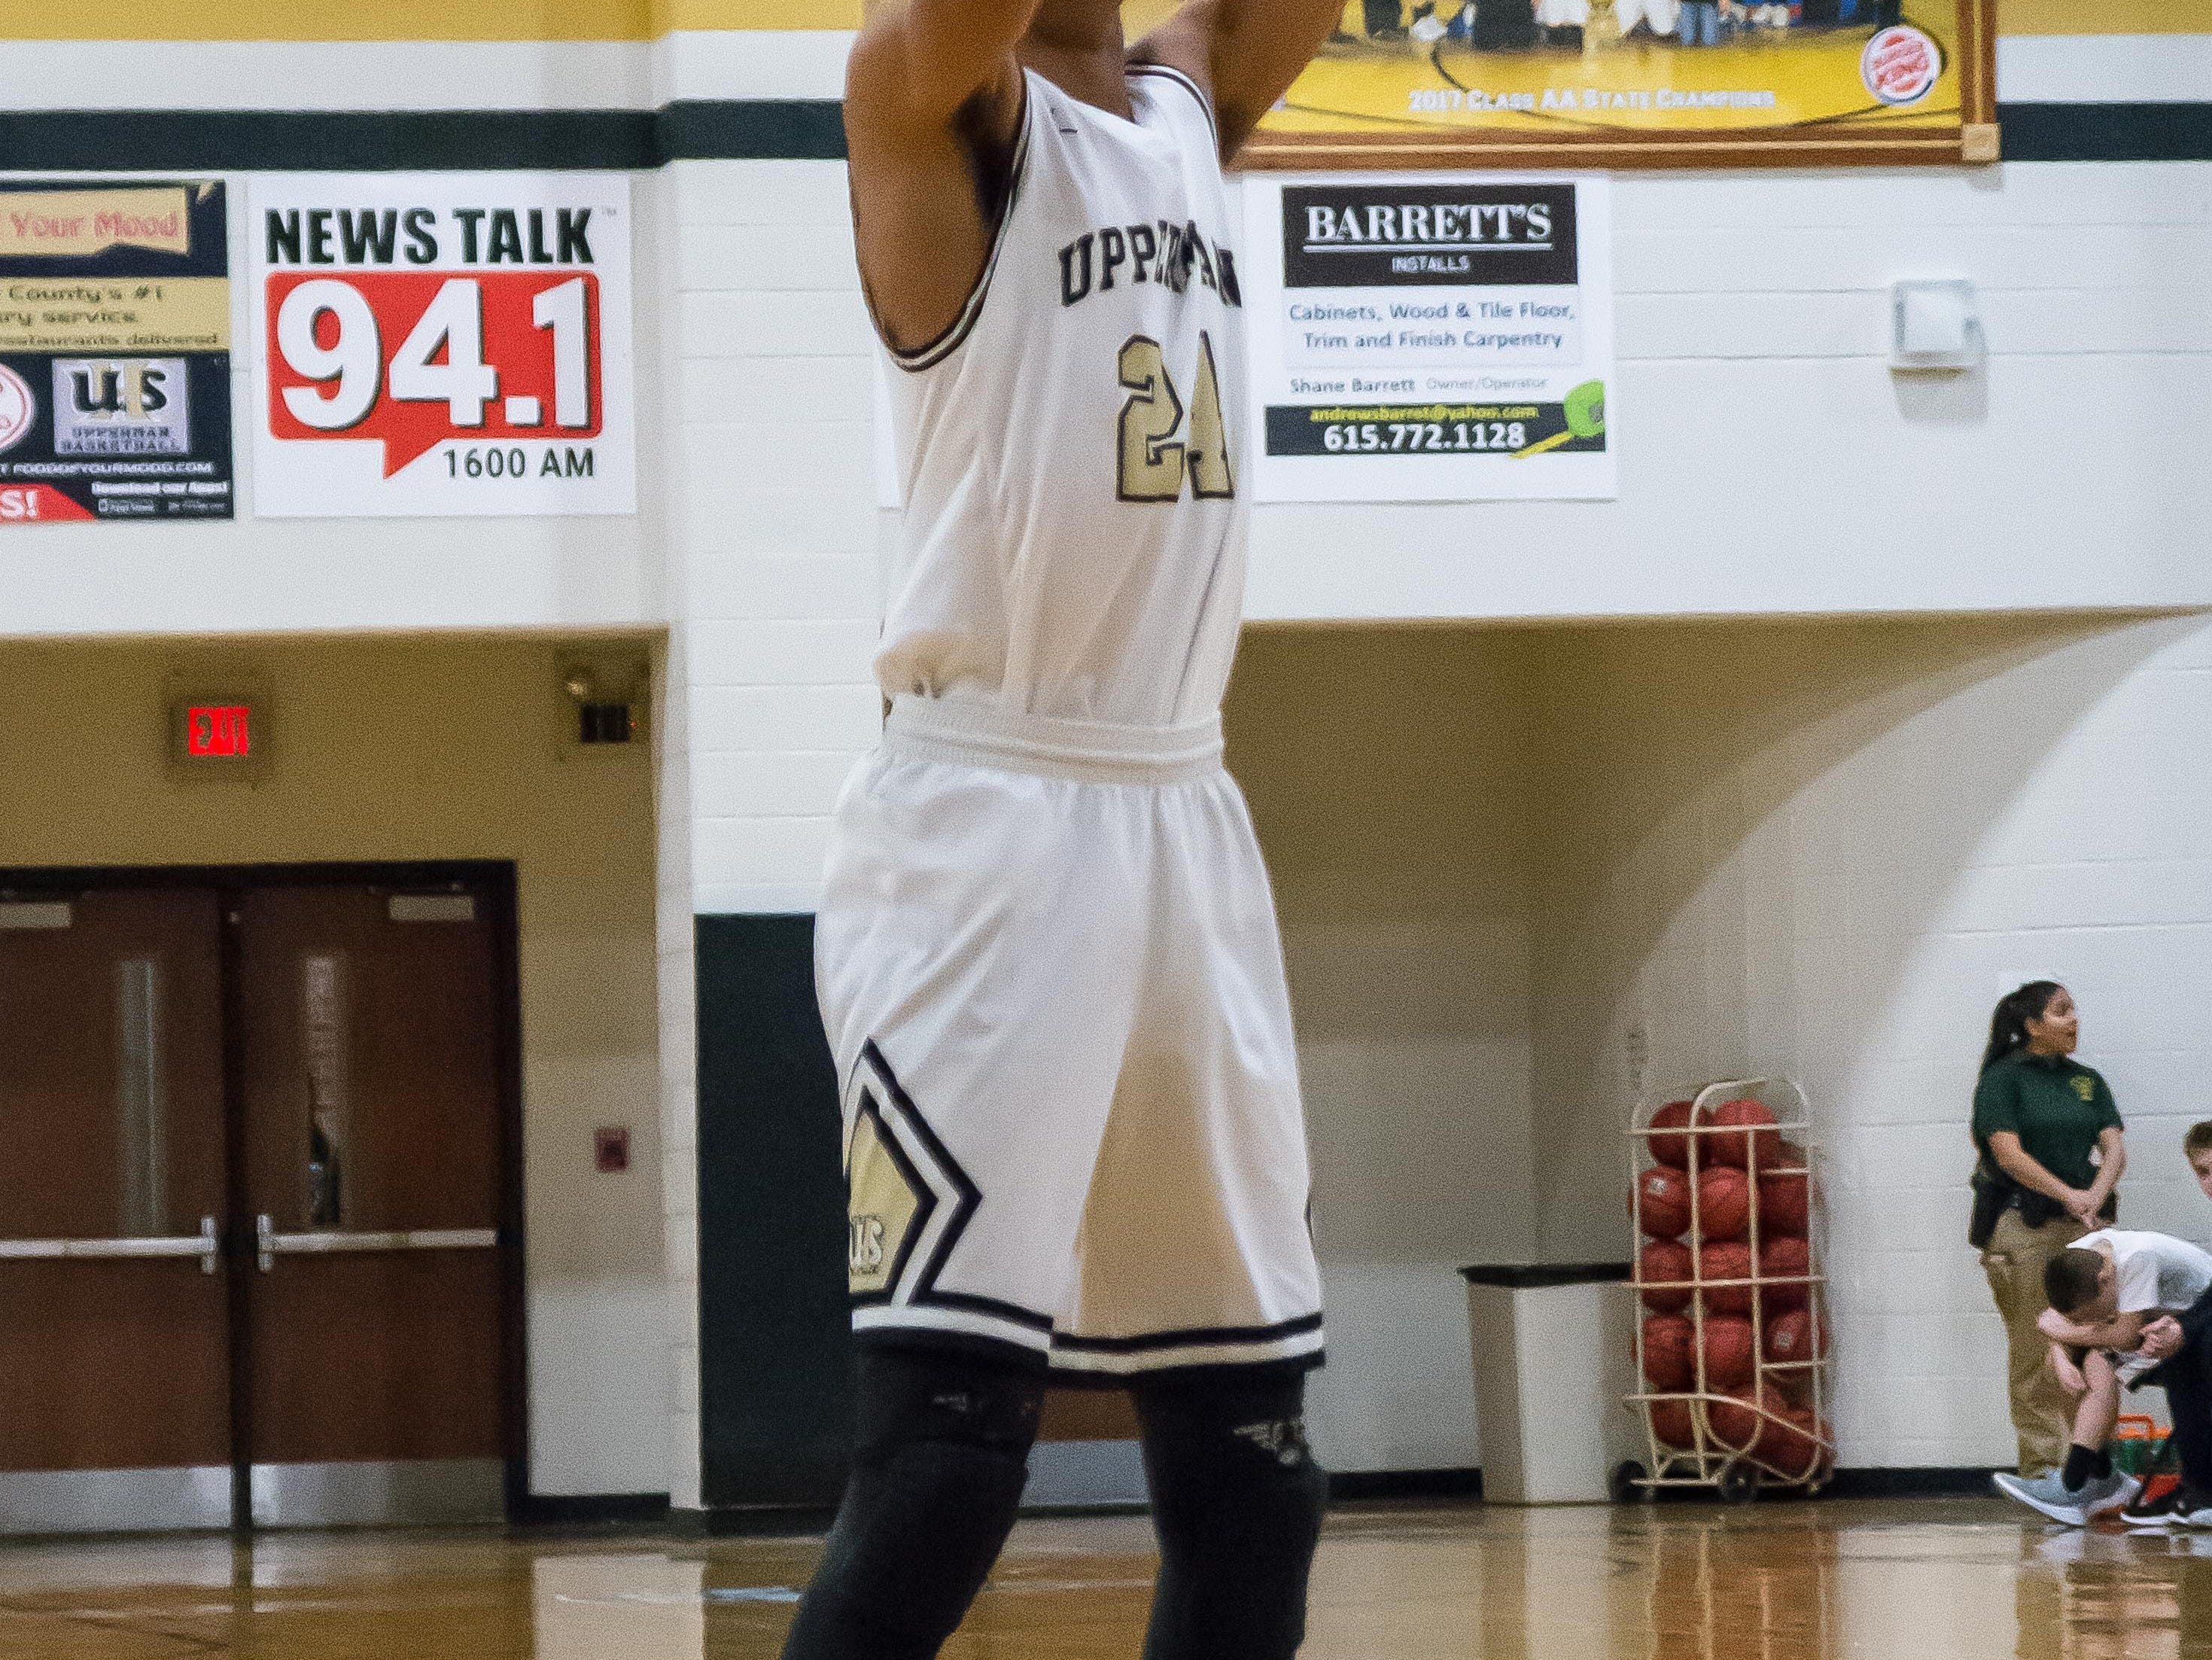 Isaiah Allen had a good night for the Upperman Bees.